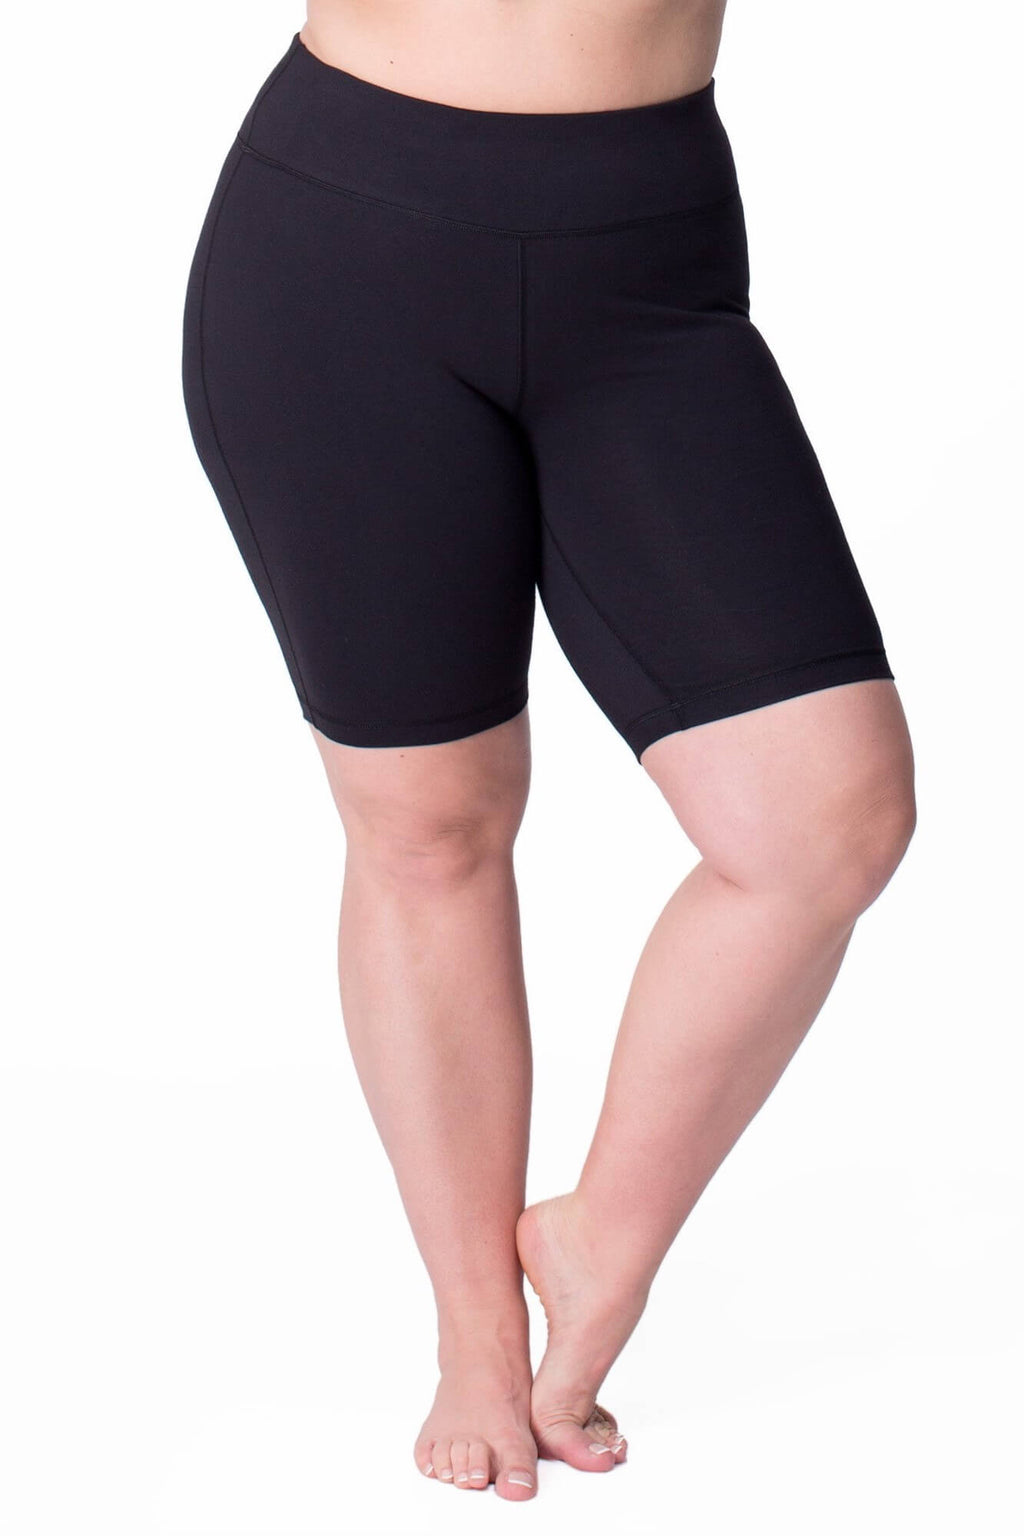 Model shown from the waist down wearing black bike shorts which cut off just above the knee.